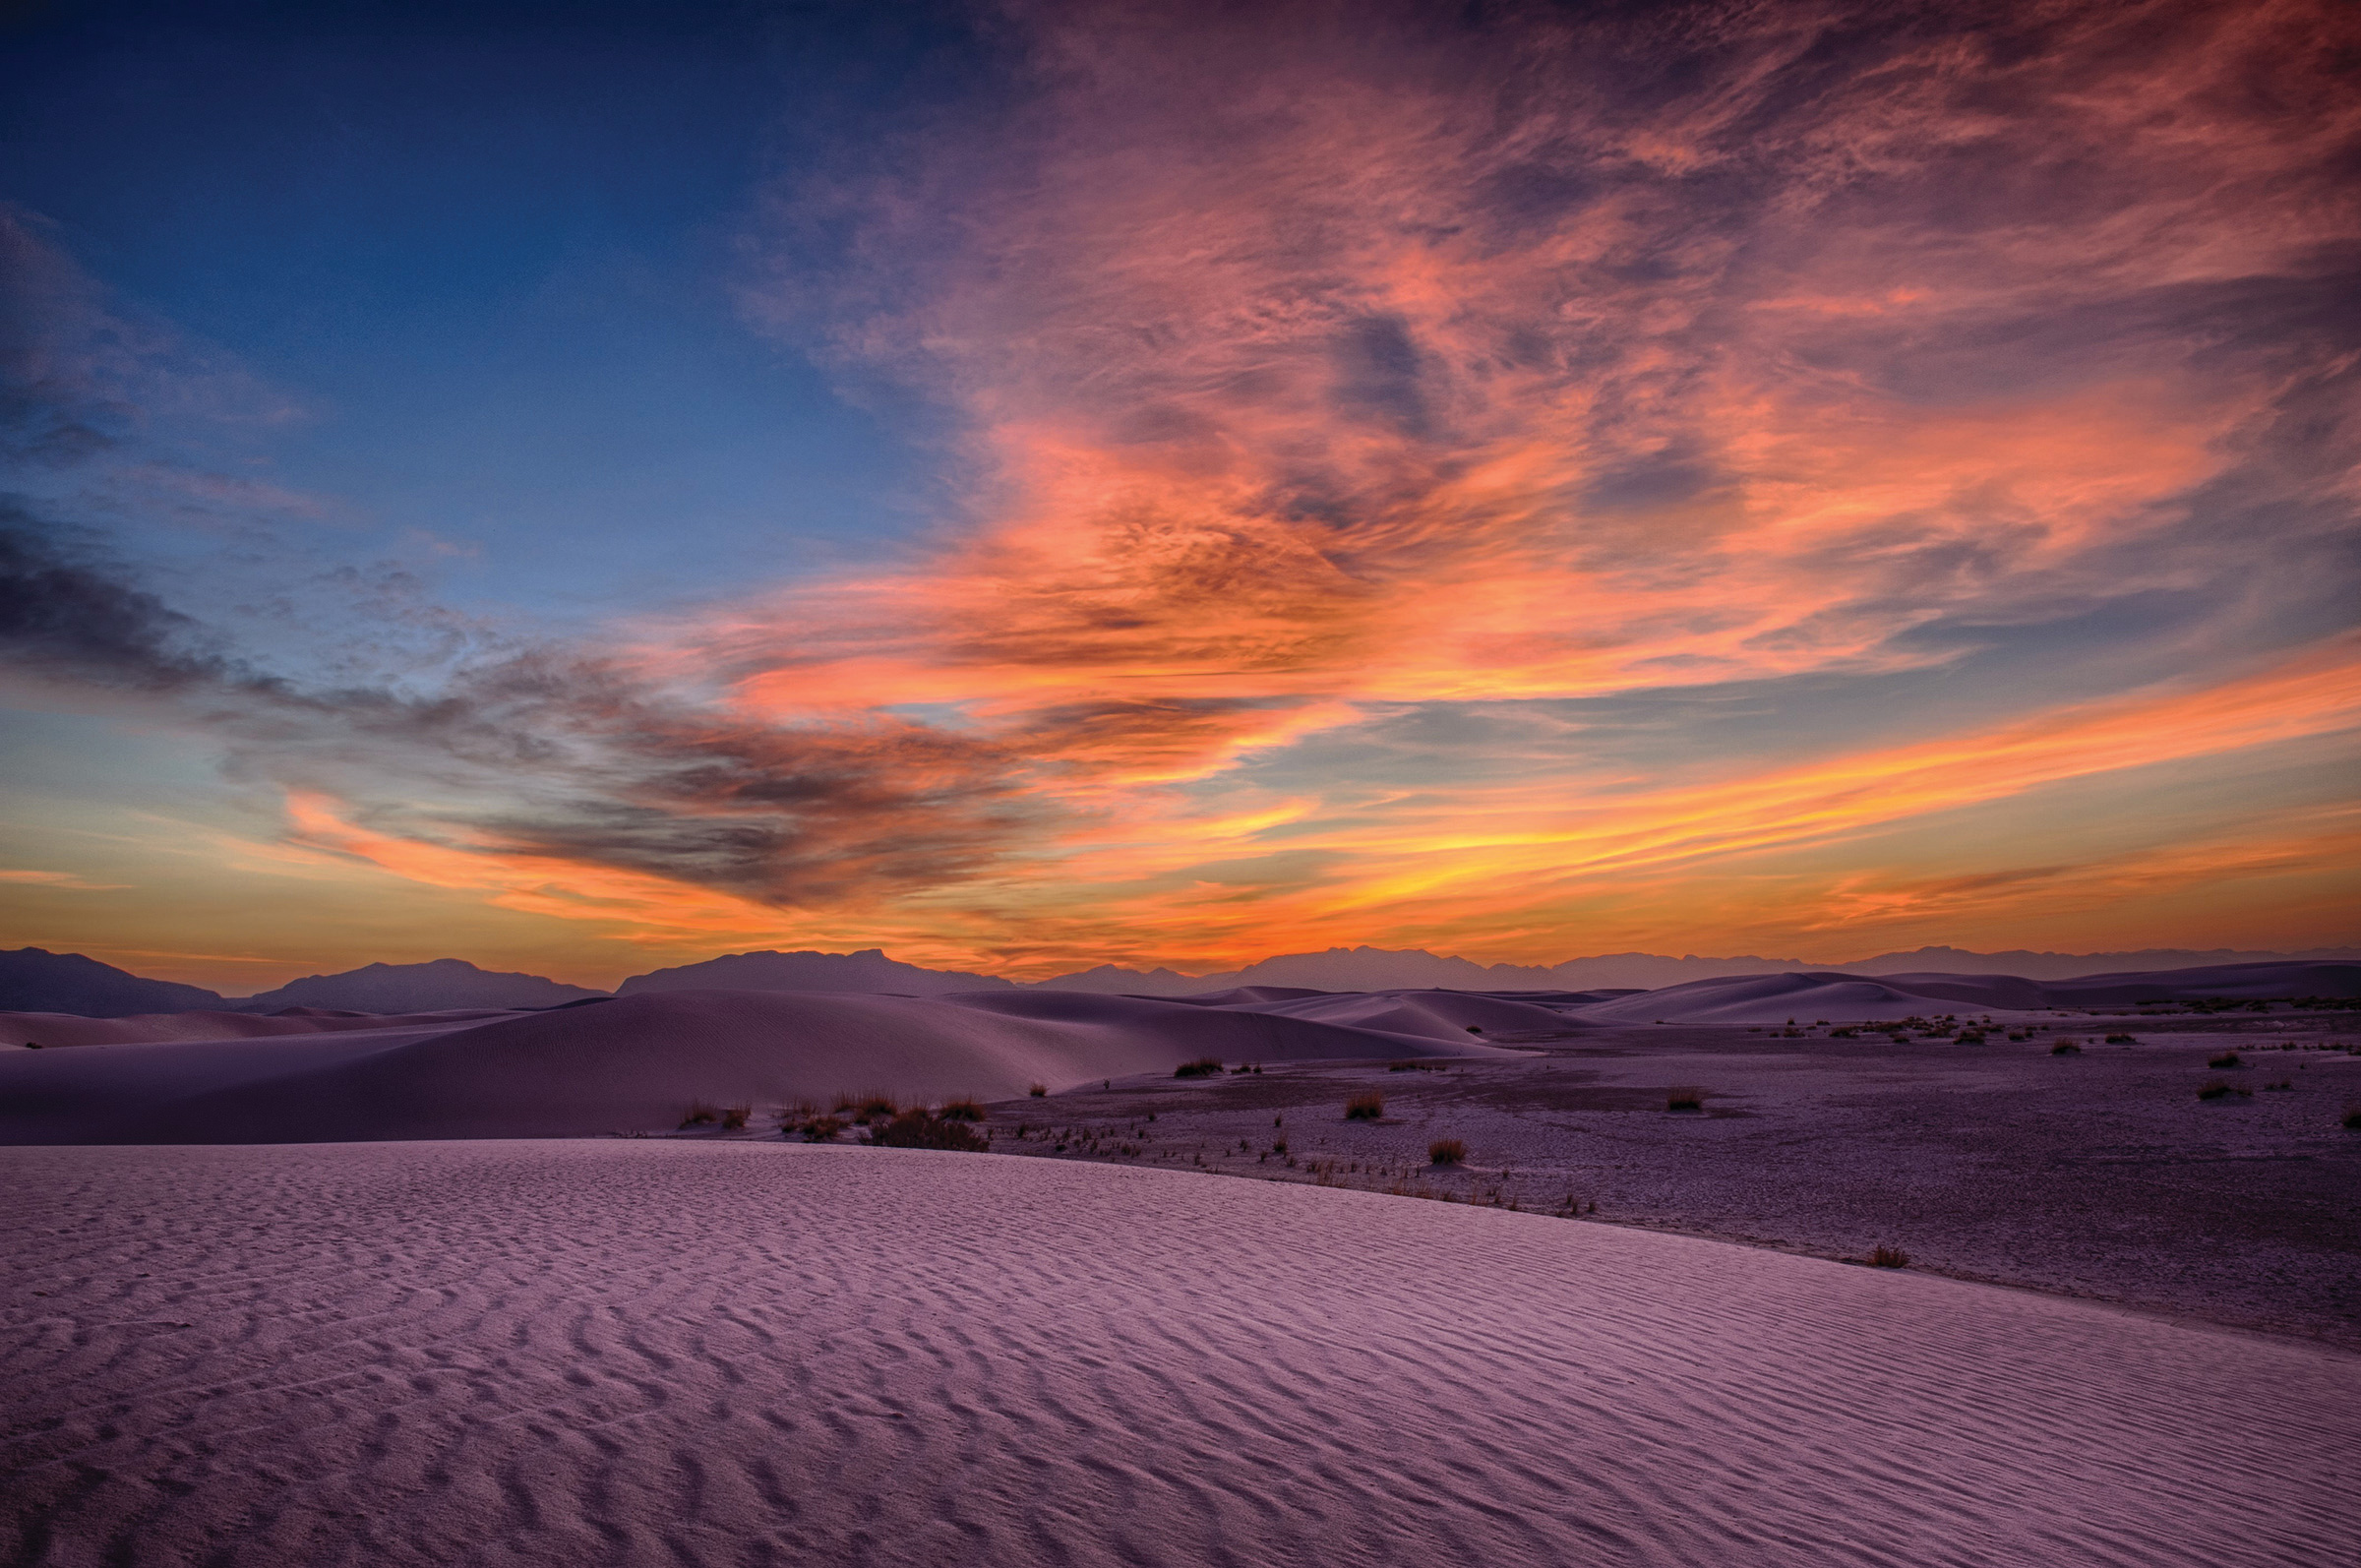 A beautiful example of colors in nature taken by club member Larry Matney at White Sands National Park. See more images at larrymatney.com.